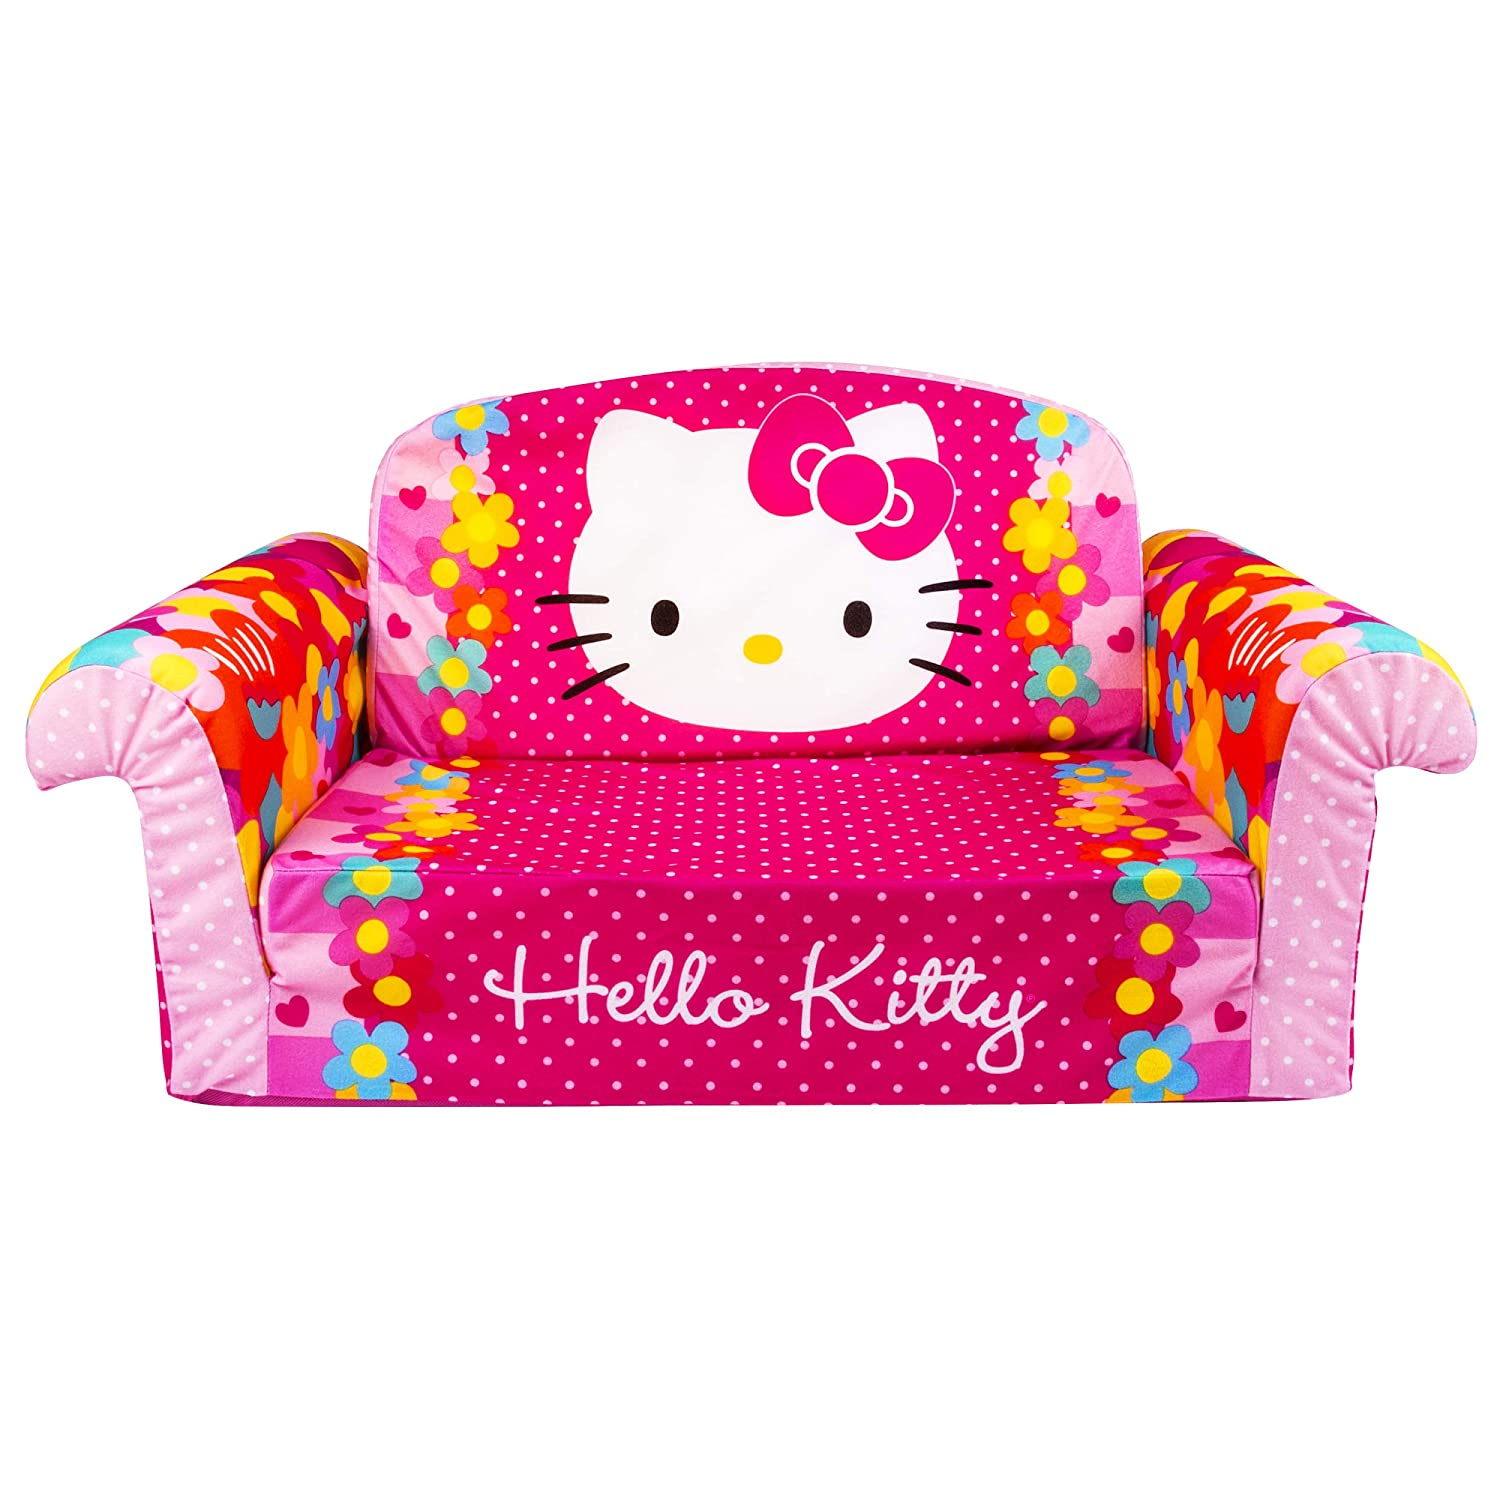 Marshmallow Furniture 6026489 Children's 2 in 1 Flip Open Foam Sofa, Hello Kitty 6026491